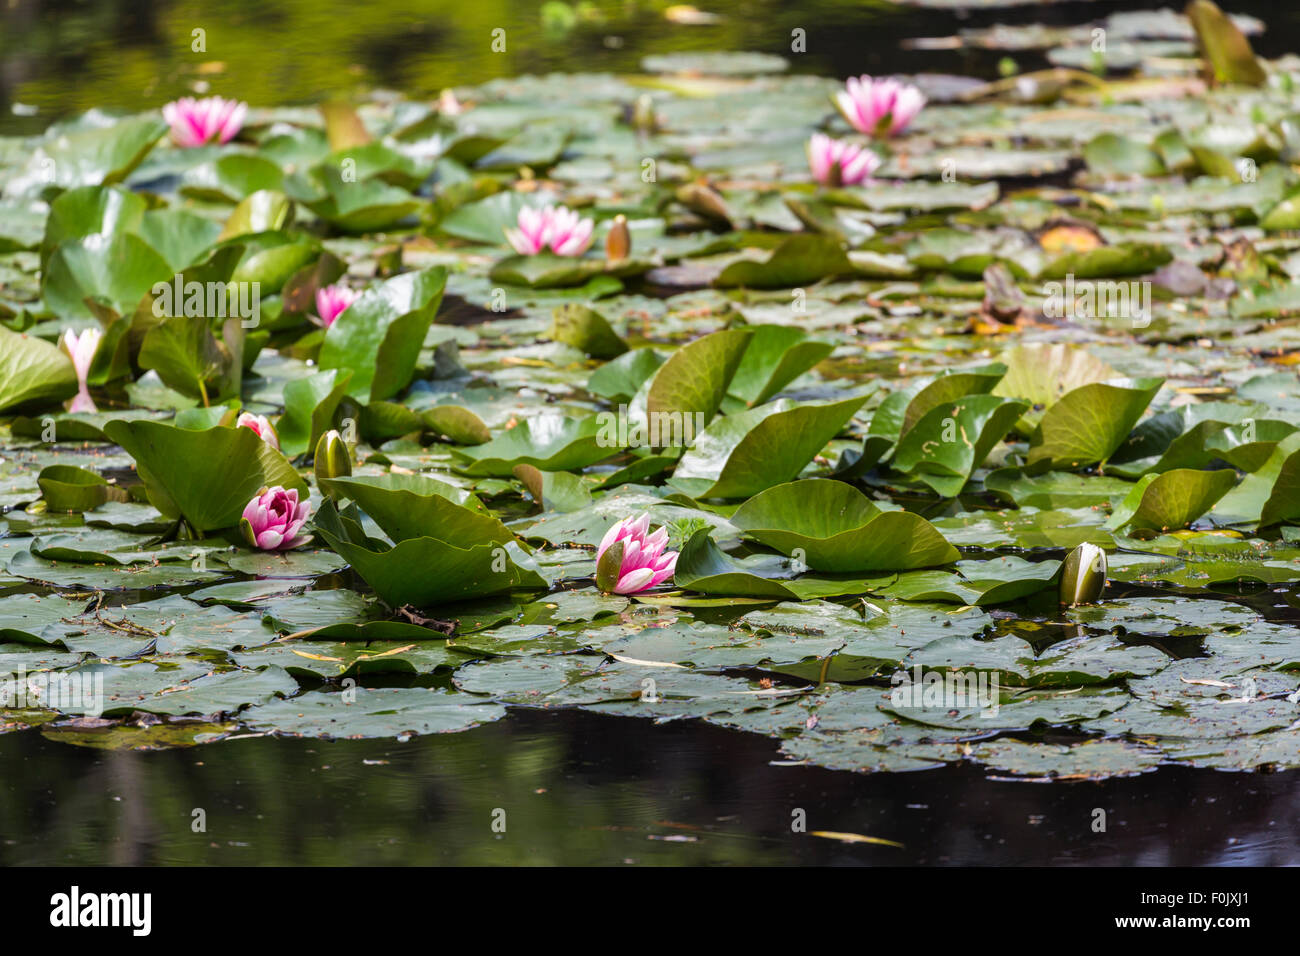 Pink water lilies in the popular Water Garden water lily pond at Giverny, the garden of impressionist painter Claude - Stock Image